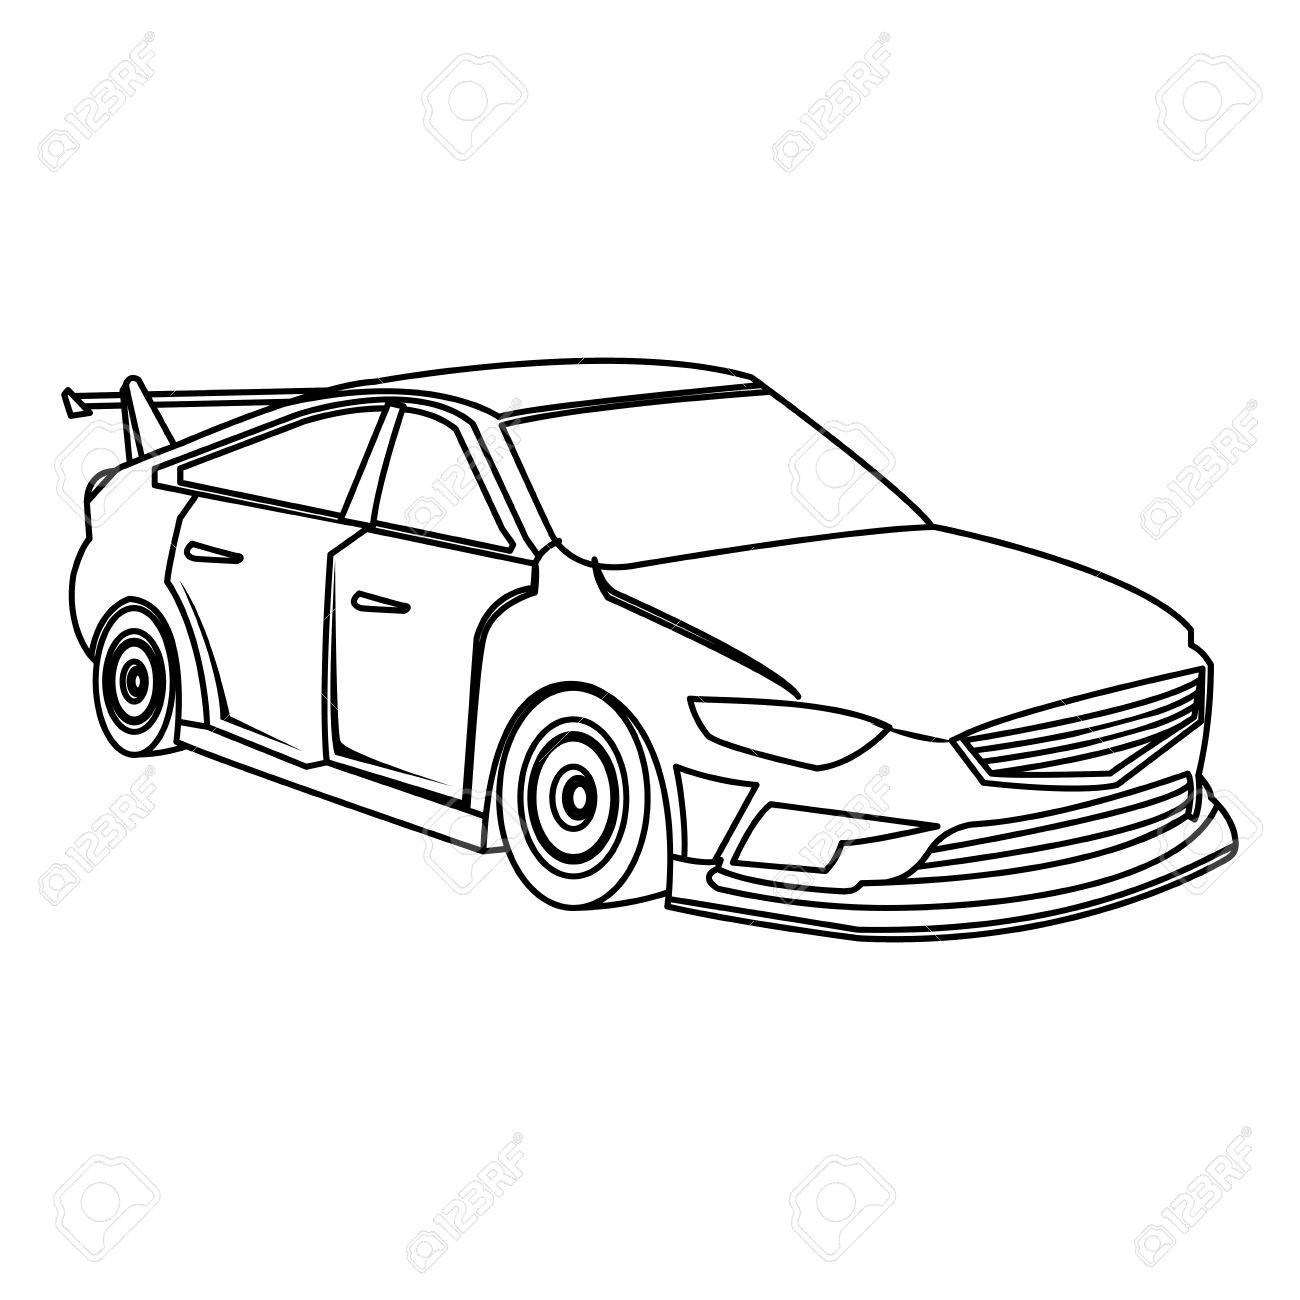 Sports car drawing outline at getdrawings free for personal